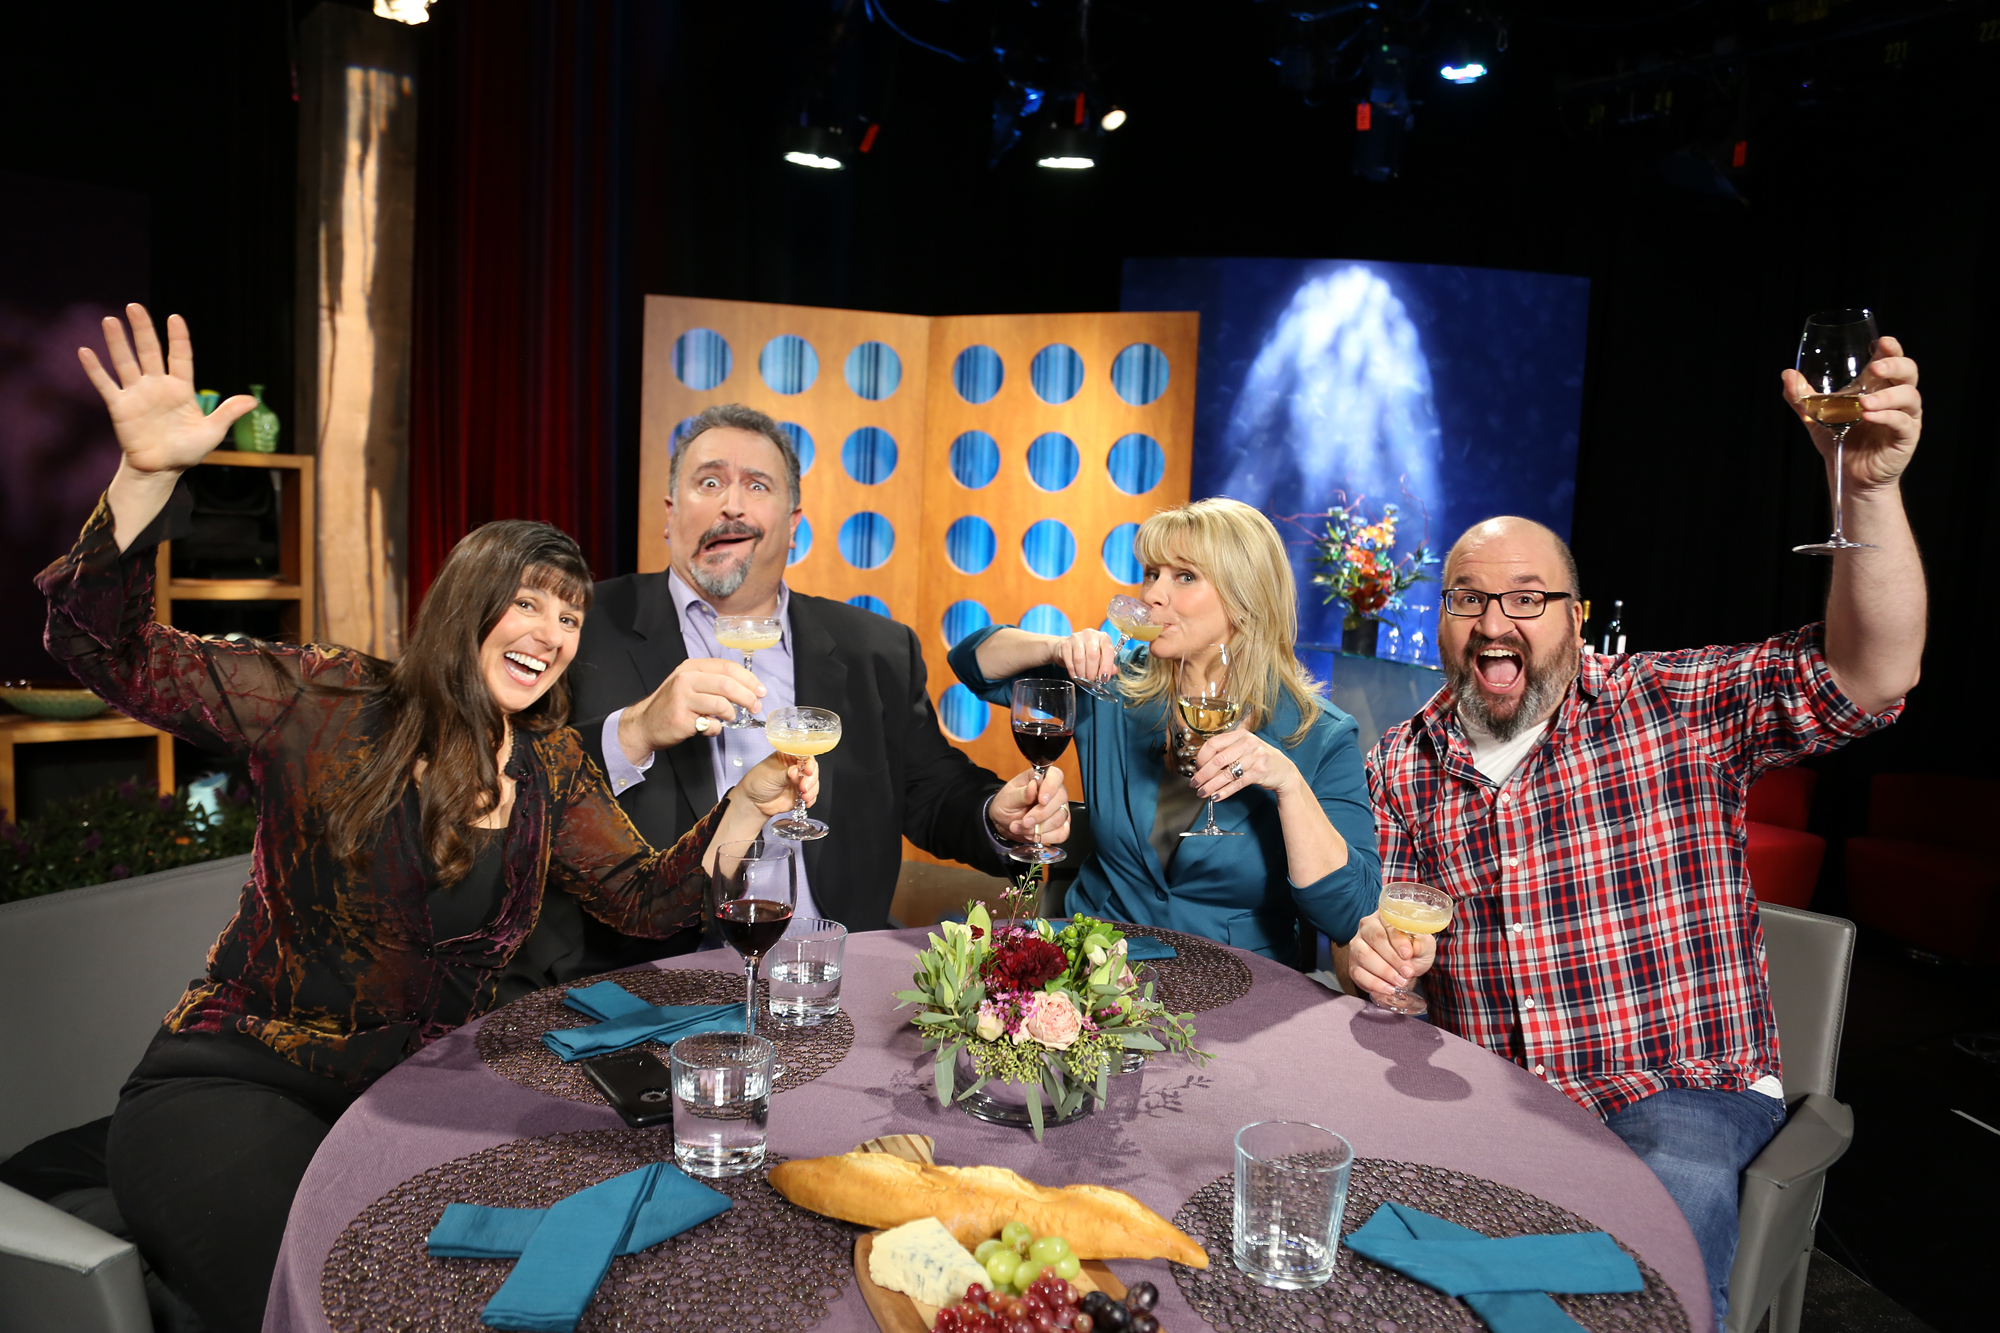 Host Leslie Sbrocco and guests having fun on the set of season 12 episode 6.